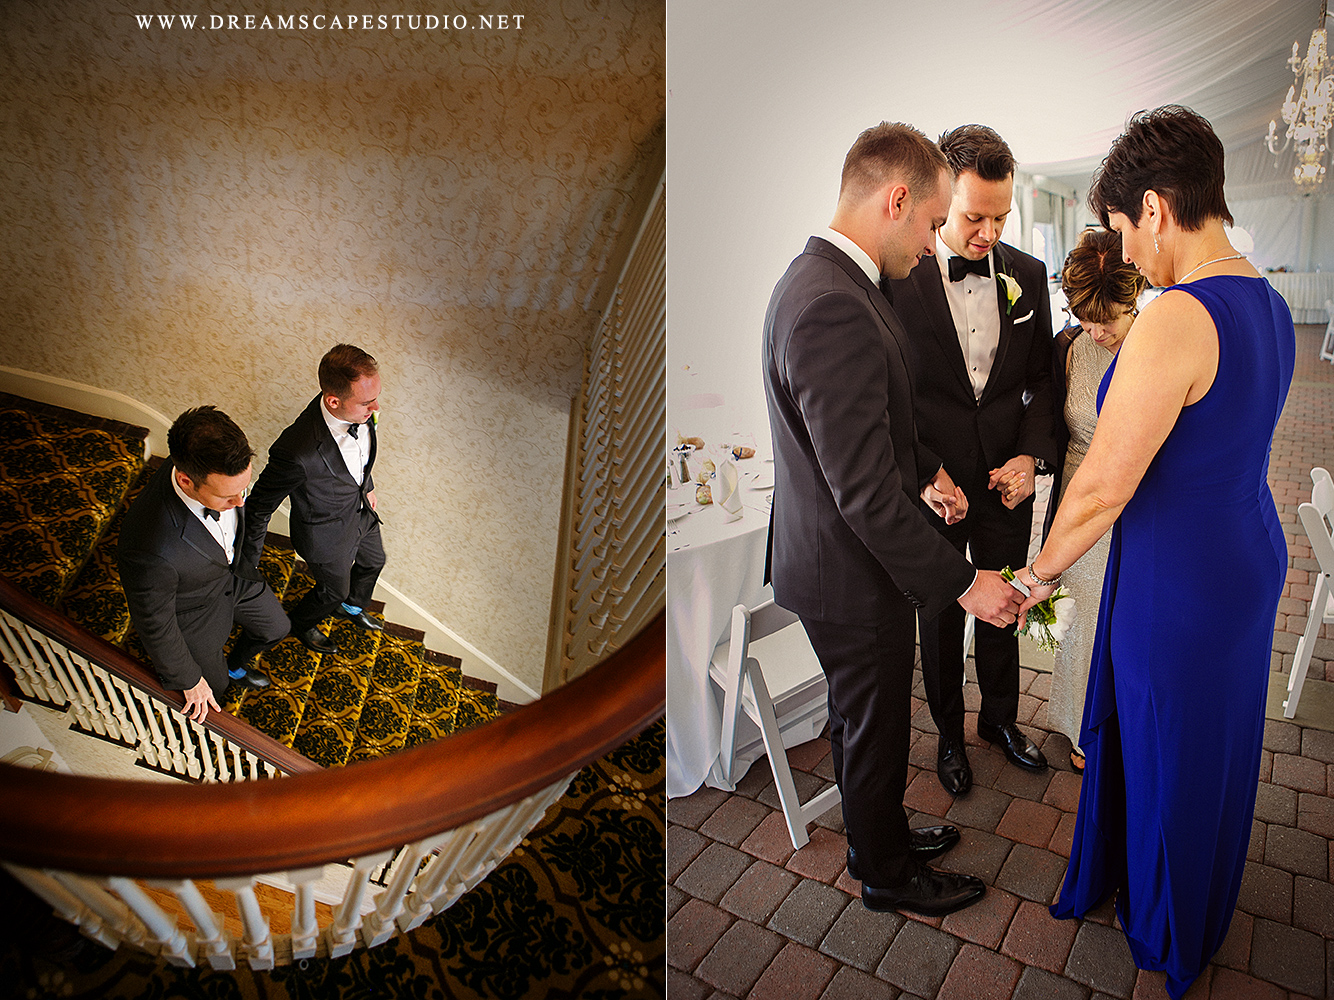 CT_Wedding_Photographer_MiRy_Blog_21.jpg